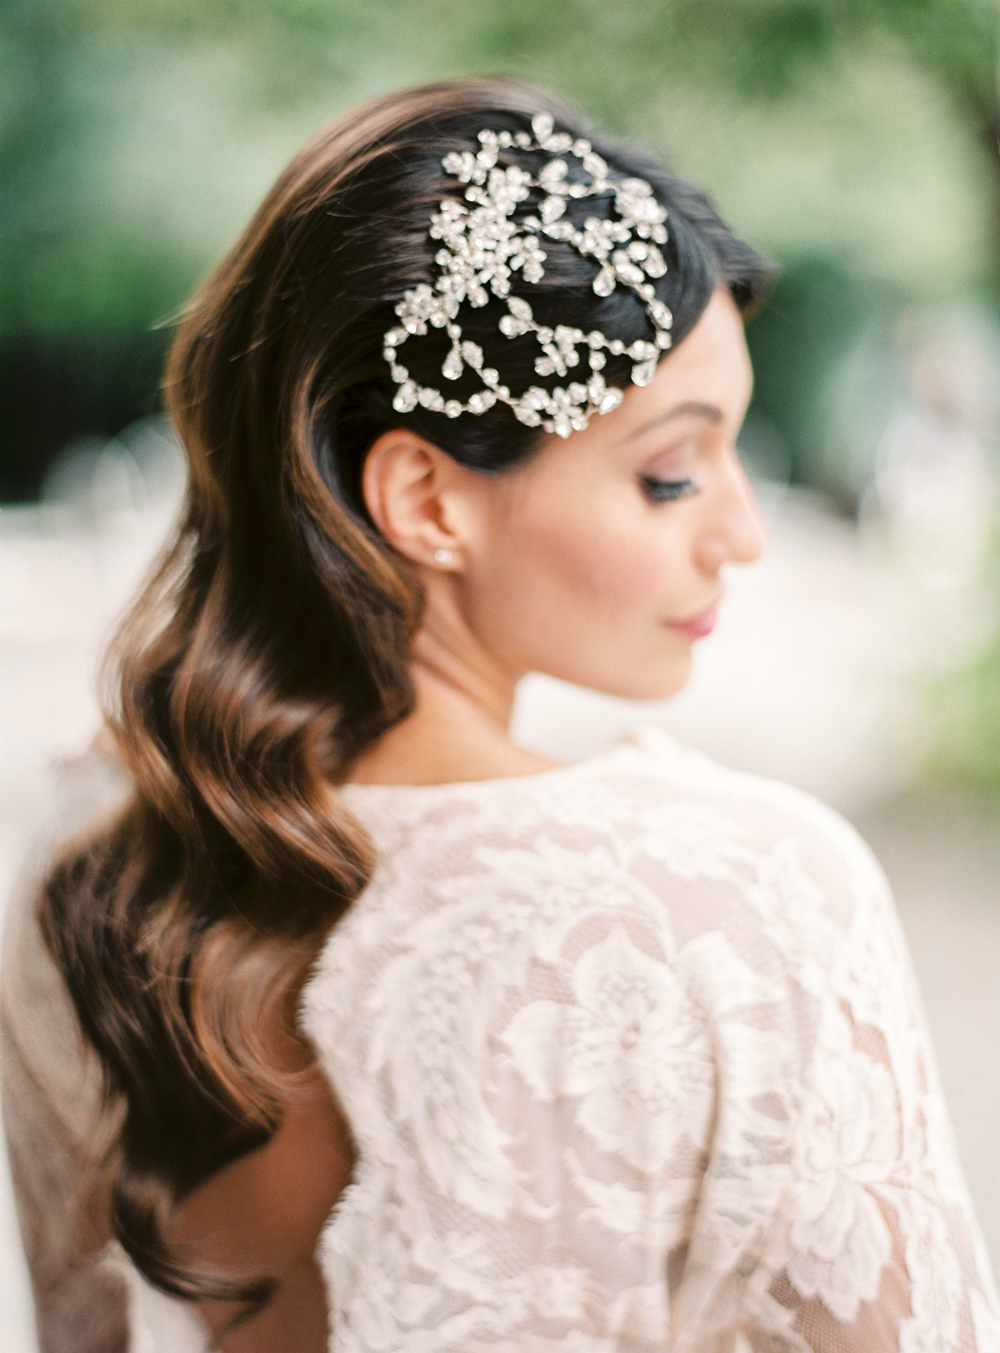 Gorgeous diamond headpiece for wedding in Italy